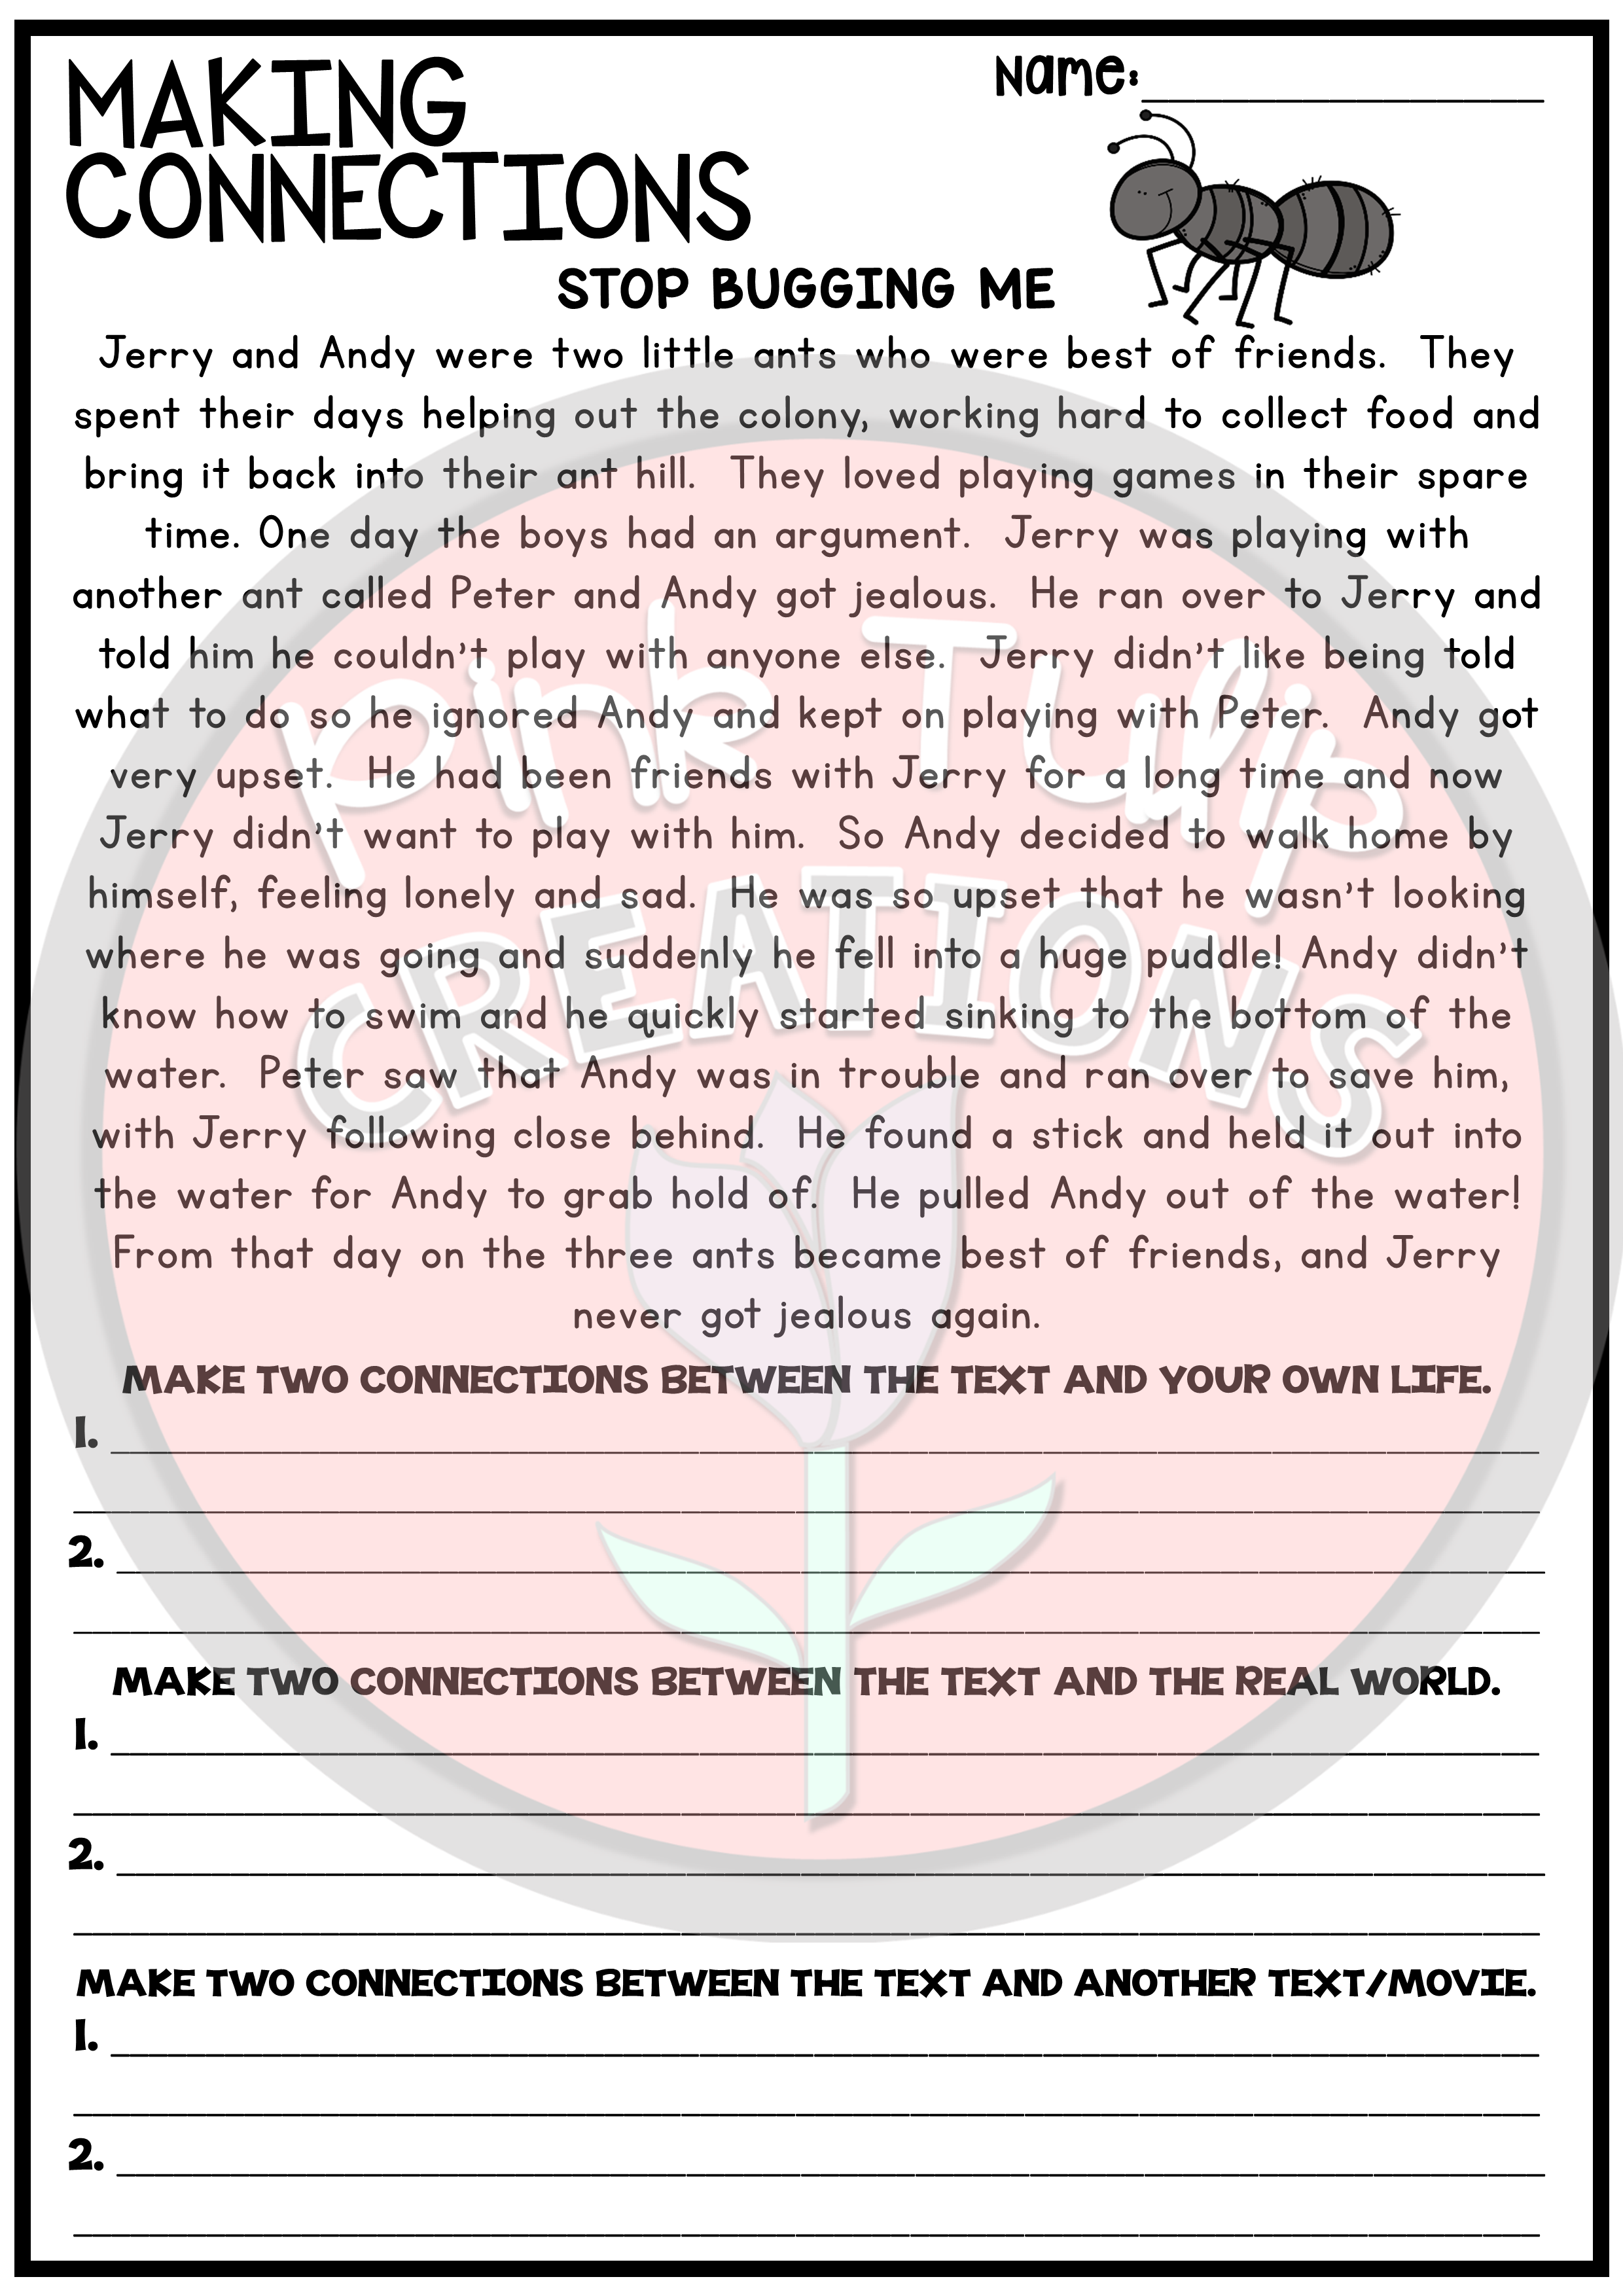 - Making Connections - Reading Worksheet Pack (With Images